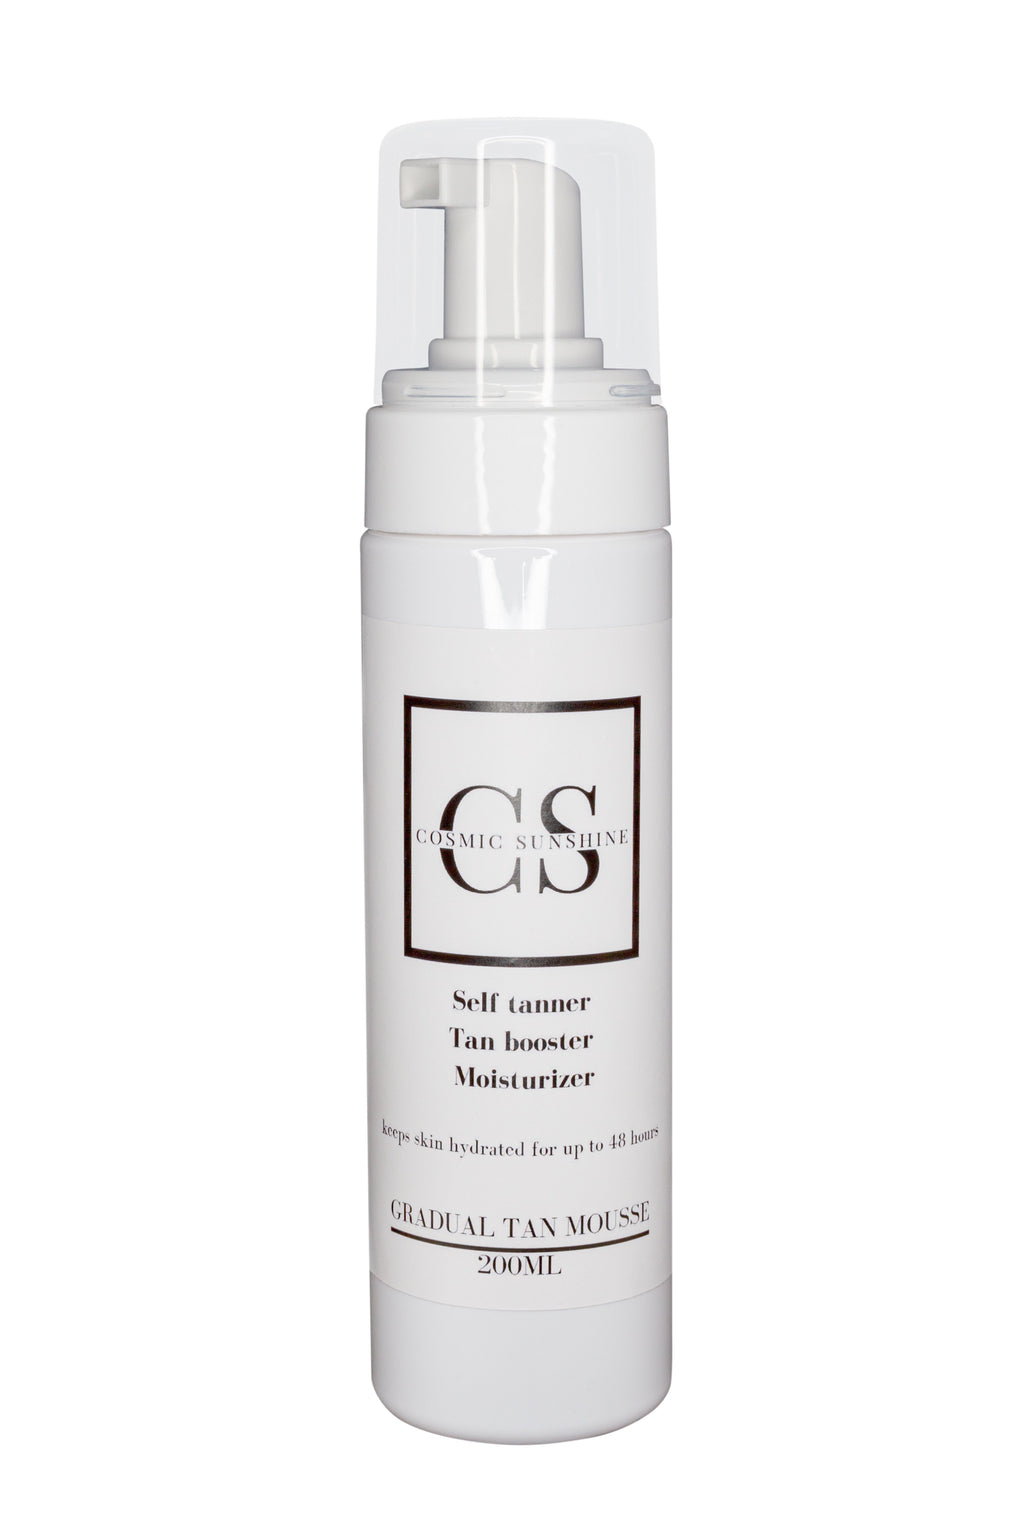 Cosmic sunshine gradual tan mousse